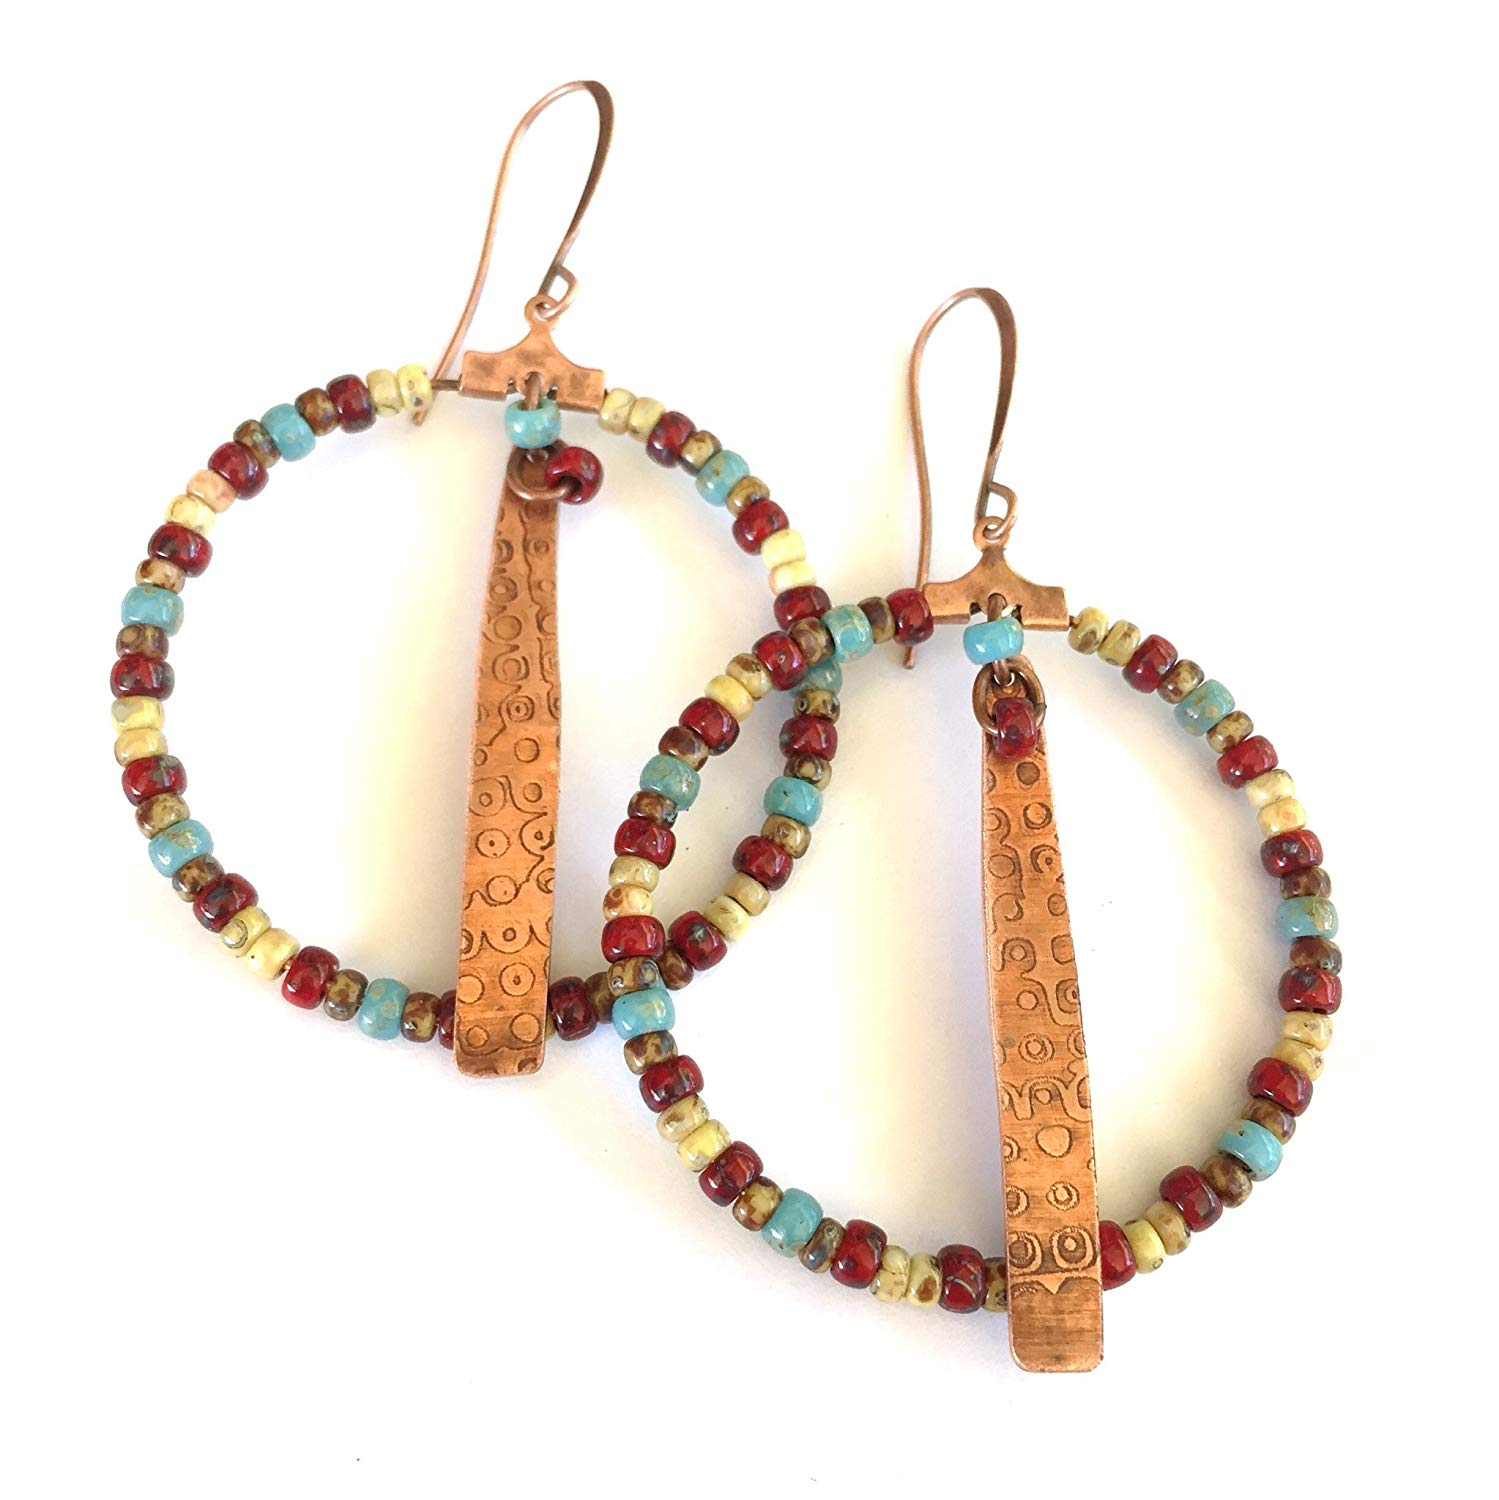 Boho Beaded Hoop Earrings in Red, Turquoise, White and Brown with Textured Copper Drops by BANDANA GIRL Gypsy Bohemian